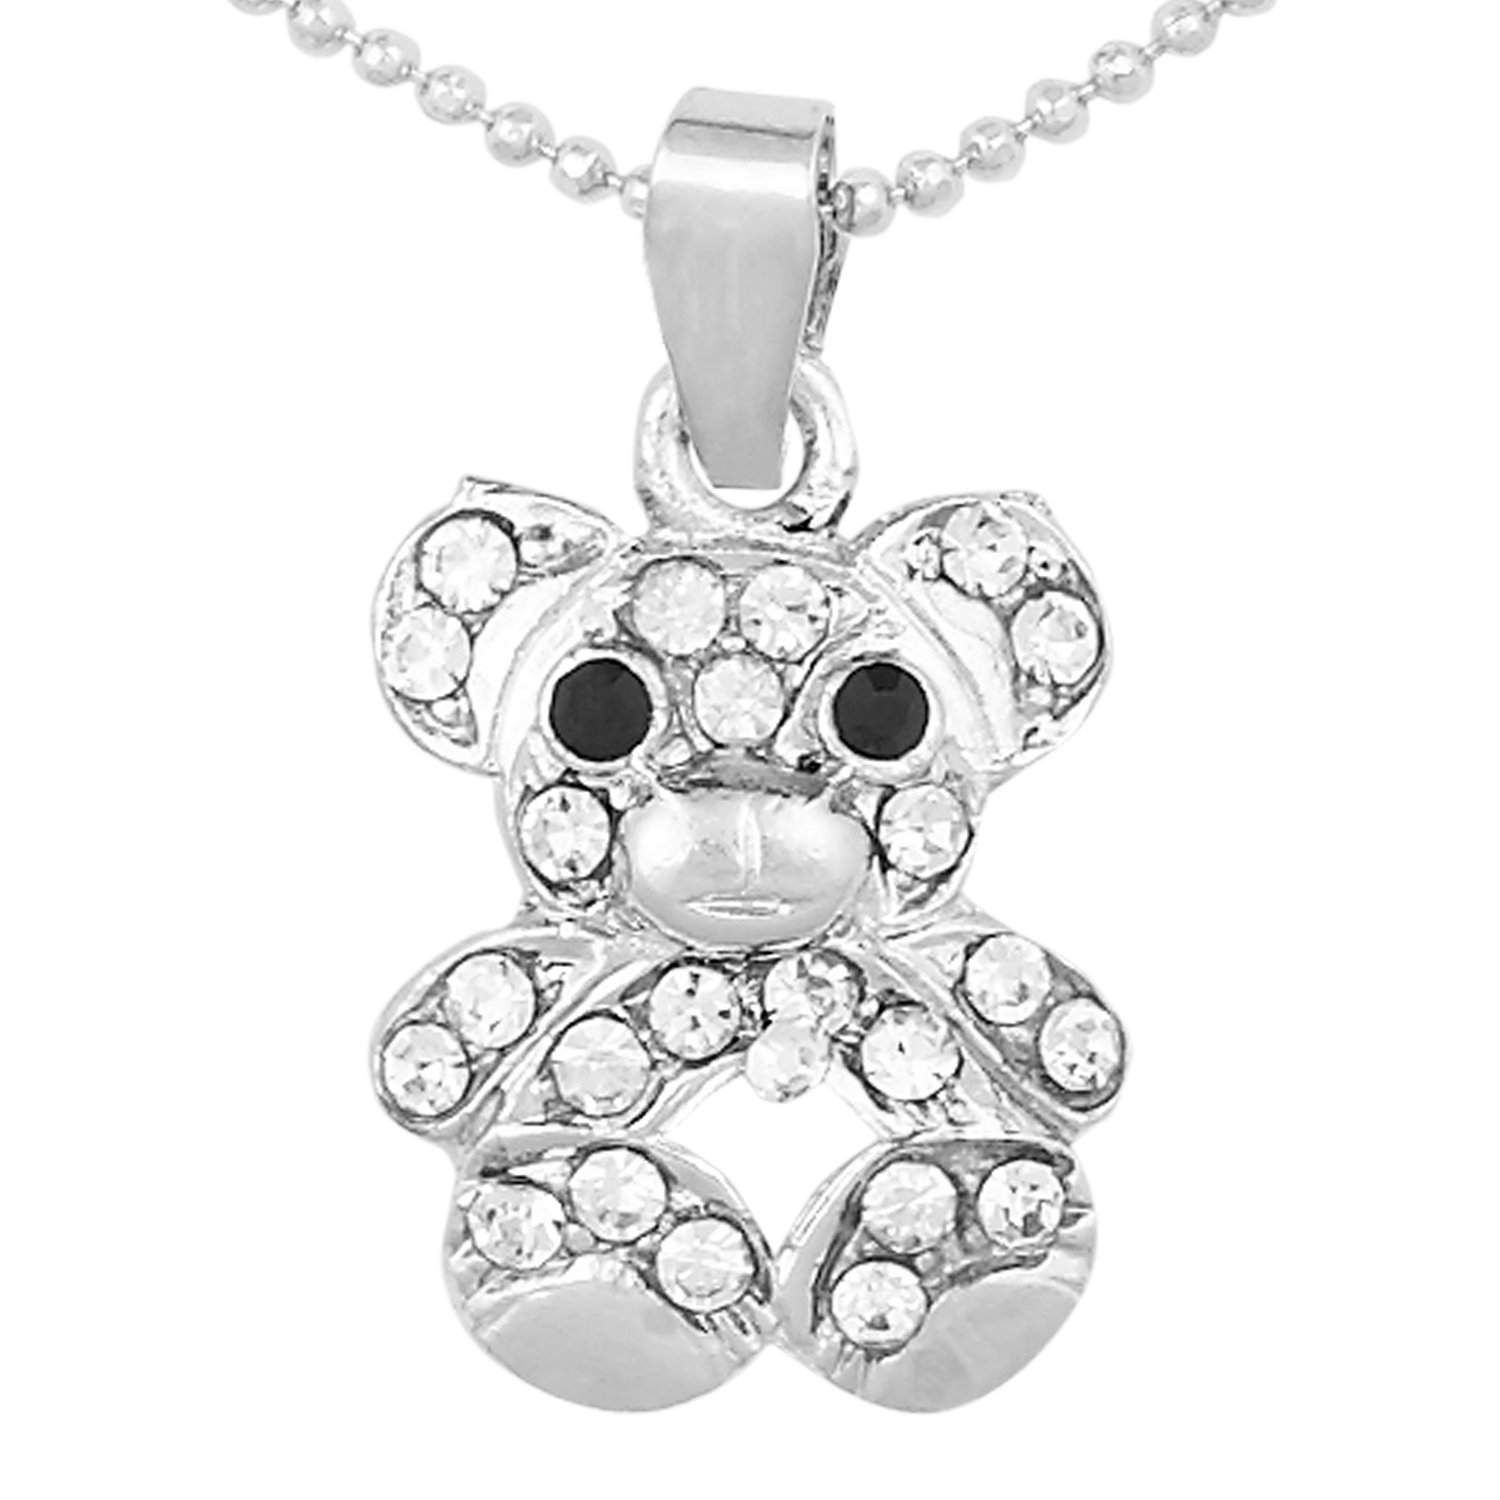 teddy dp and stainless c stud s steel amazon com necklace wemen earrings jewelry pendant urs silver bear